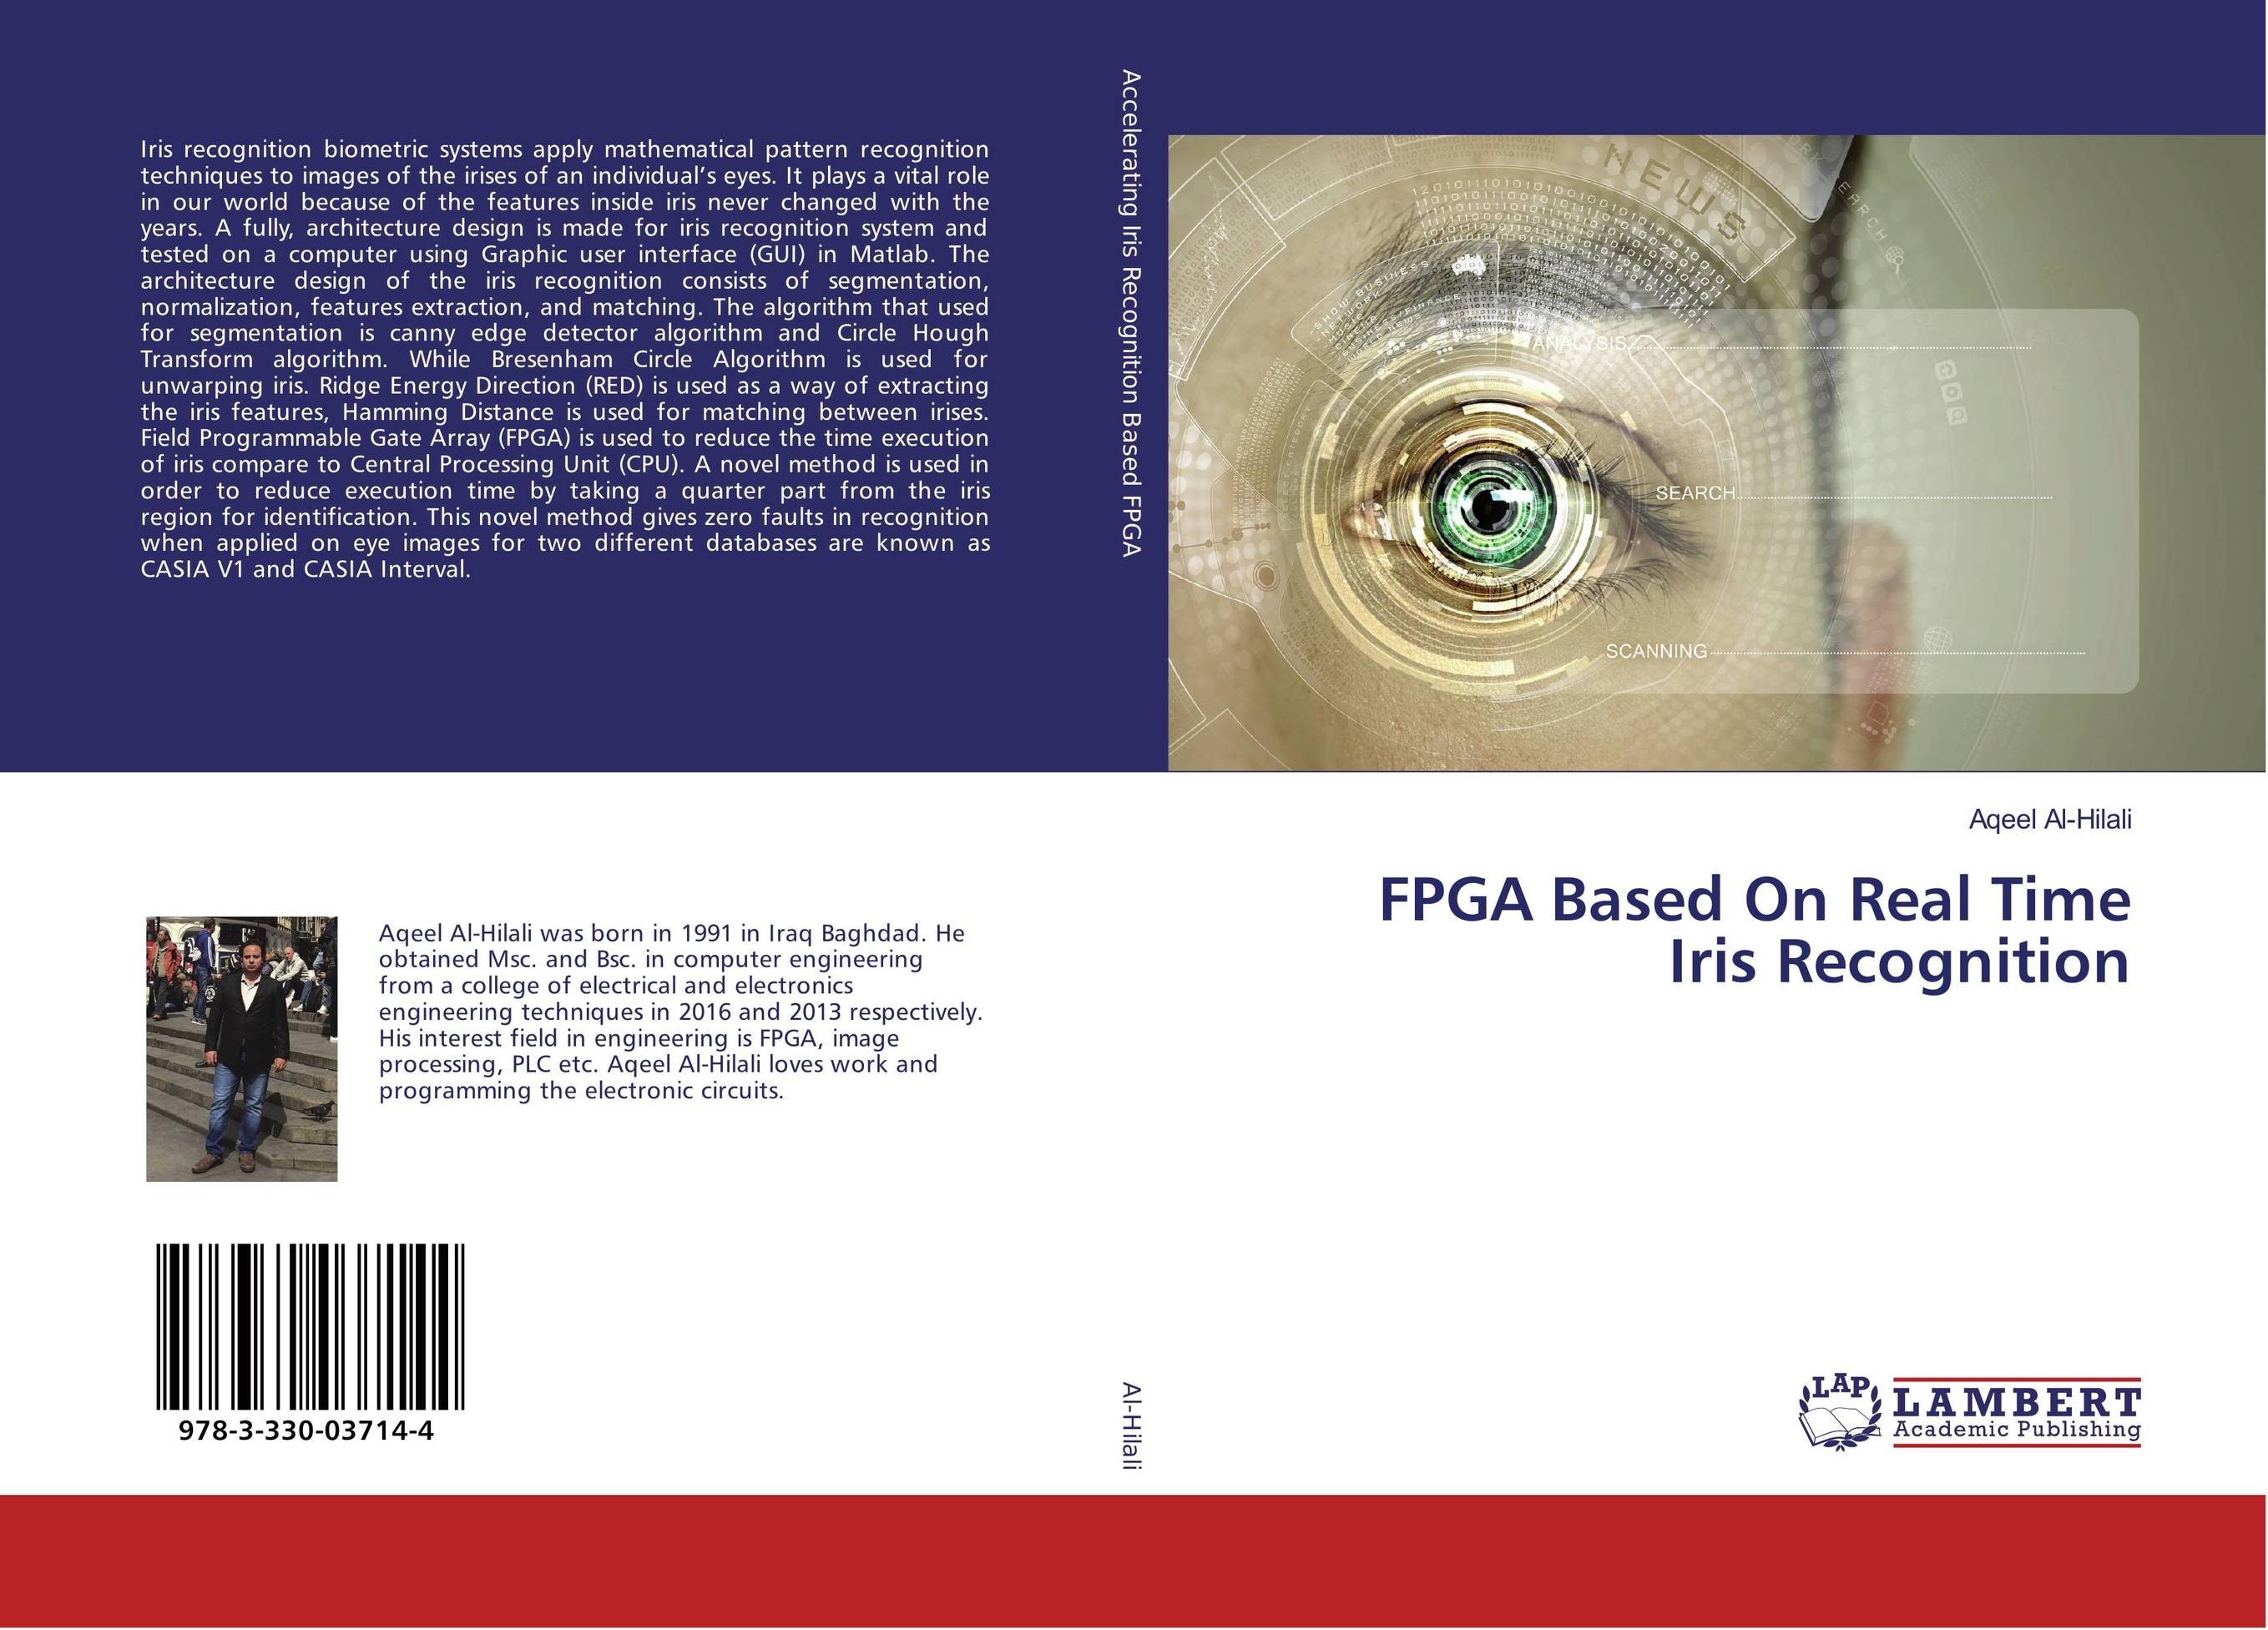 9783330037144 FPGA Based On Real Time Iris Recognition Aqeel AlHilali